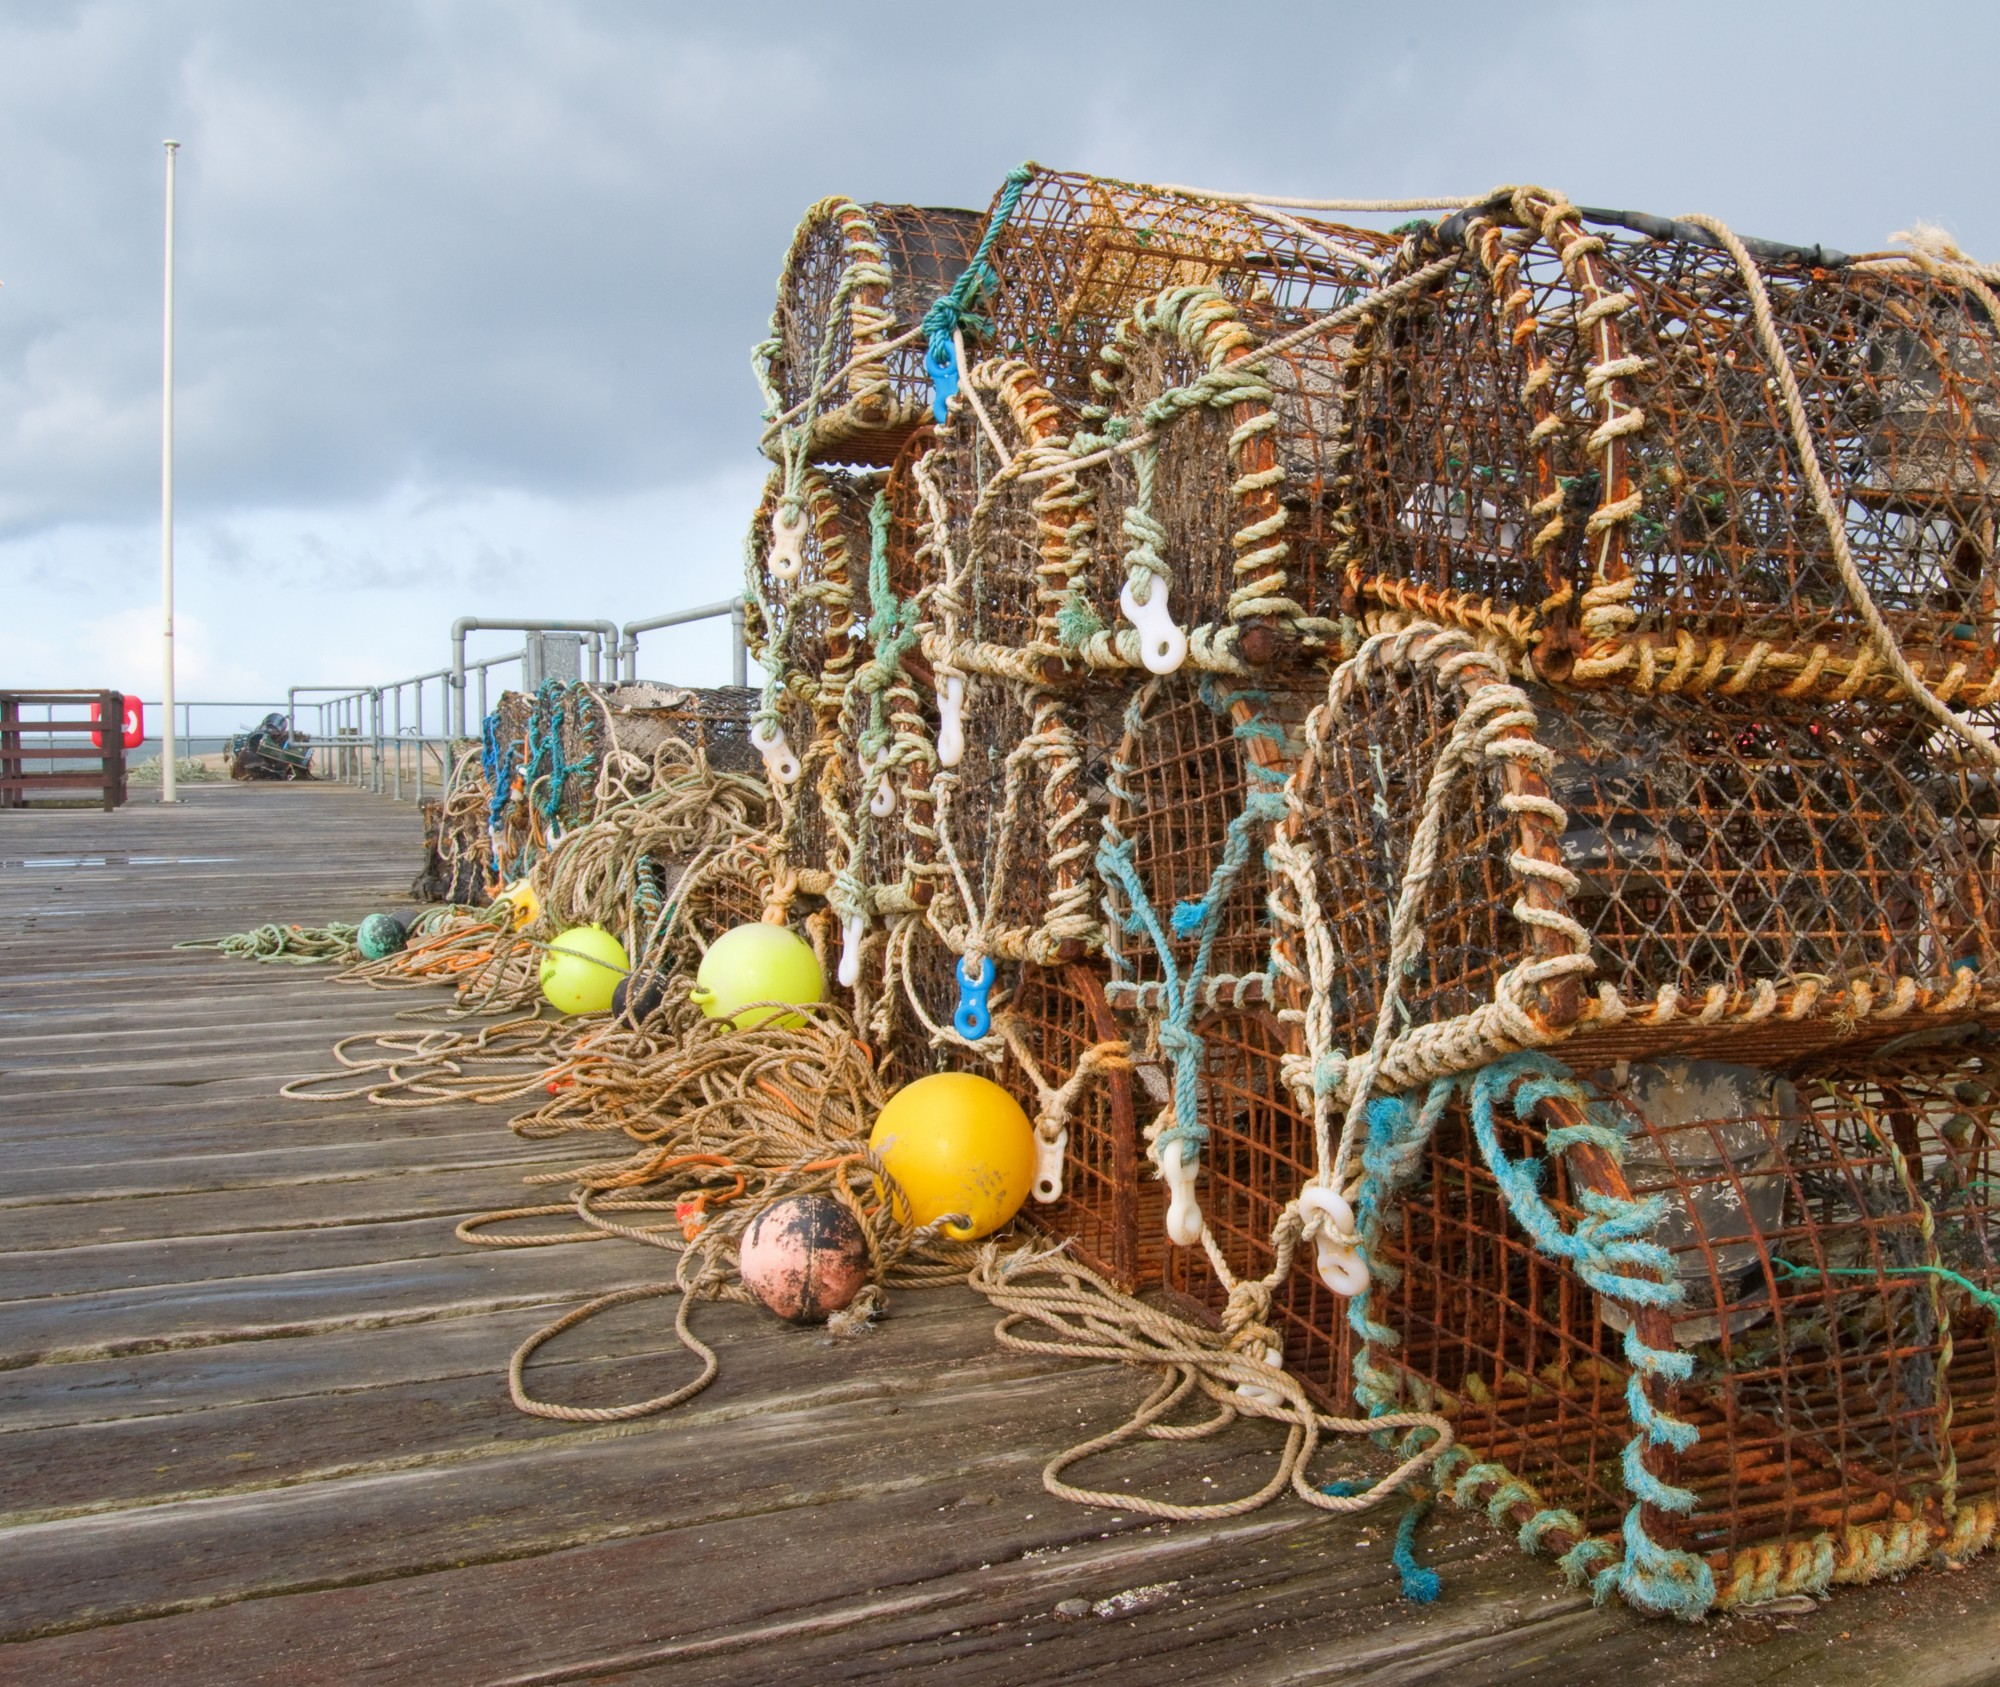 Lobster pots of the Aberdovey pier